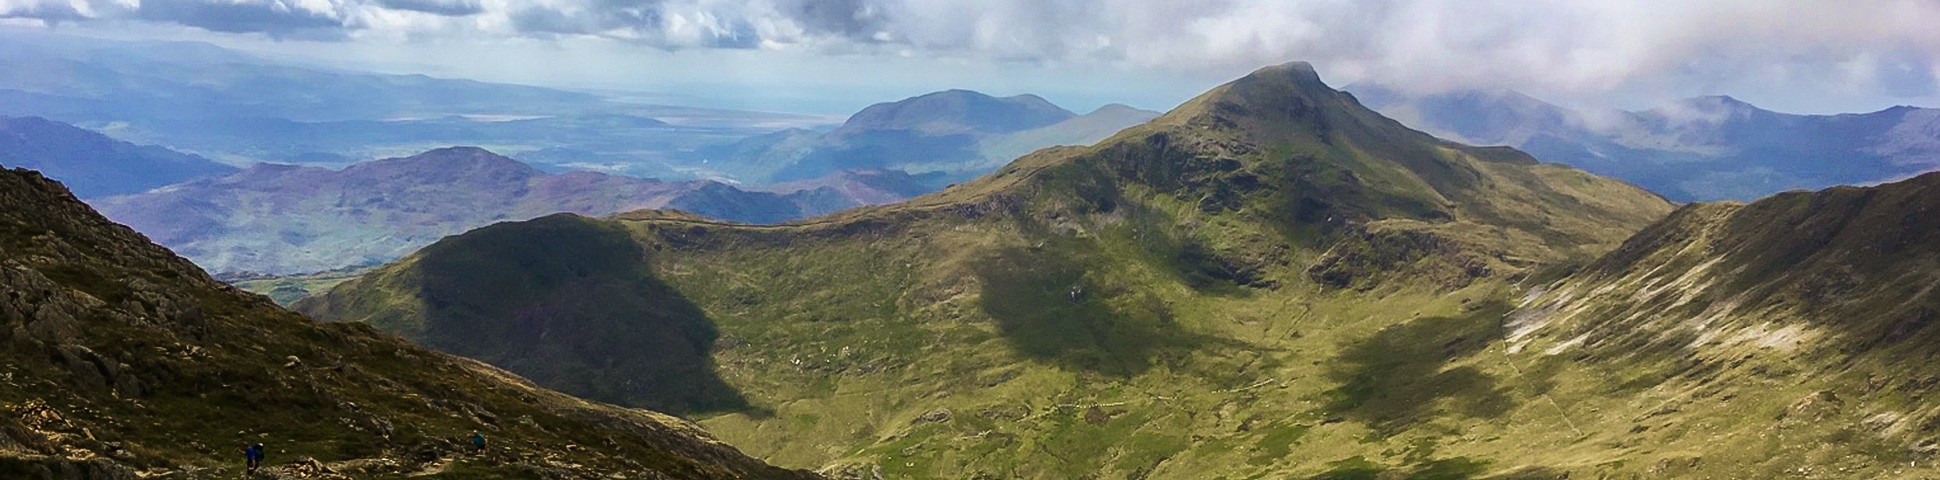 Best hiking and walking trails in Snowdonia National Park